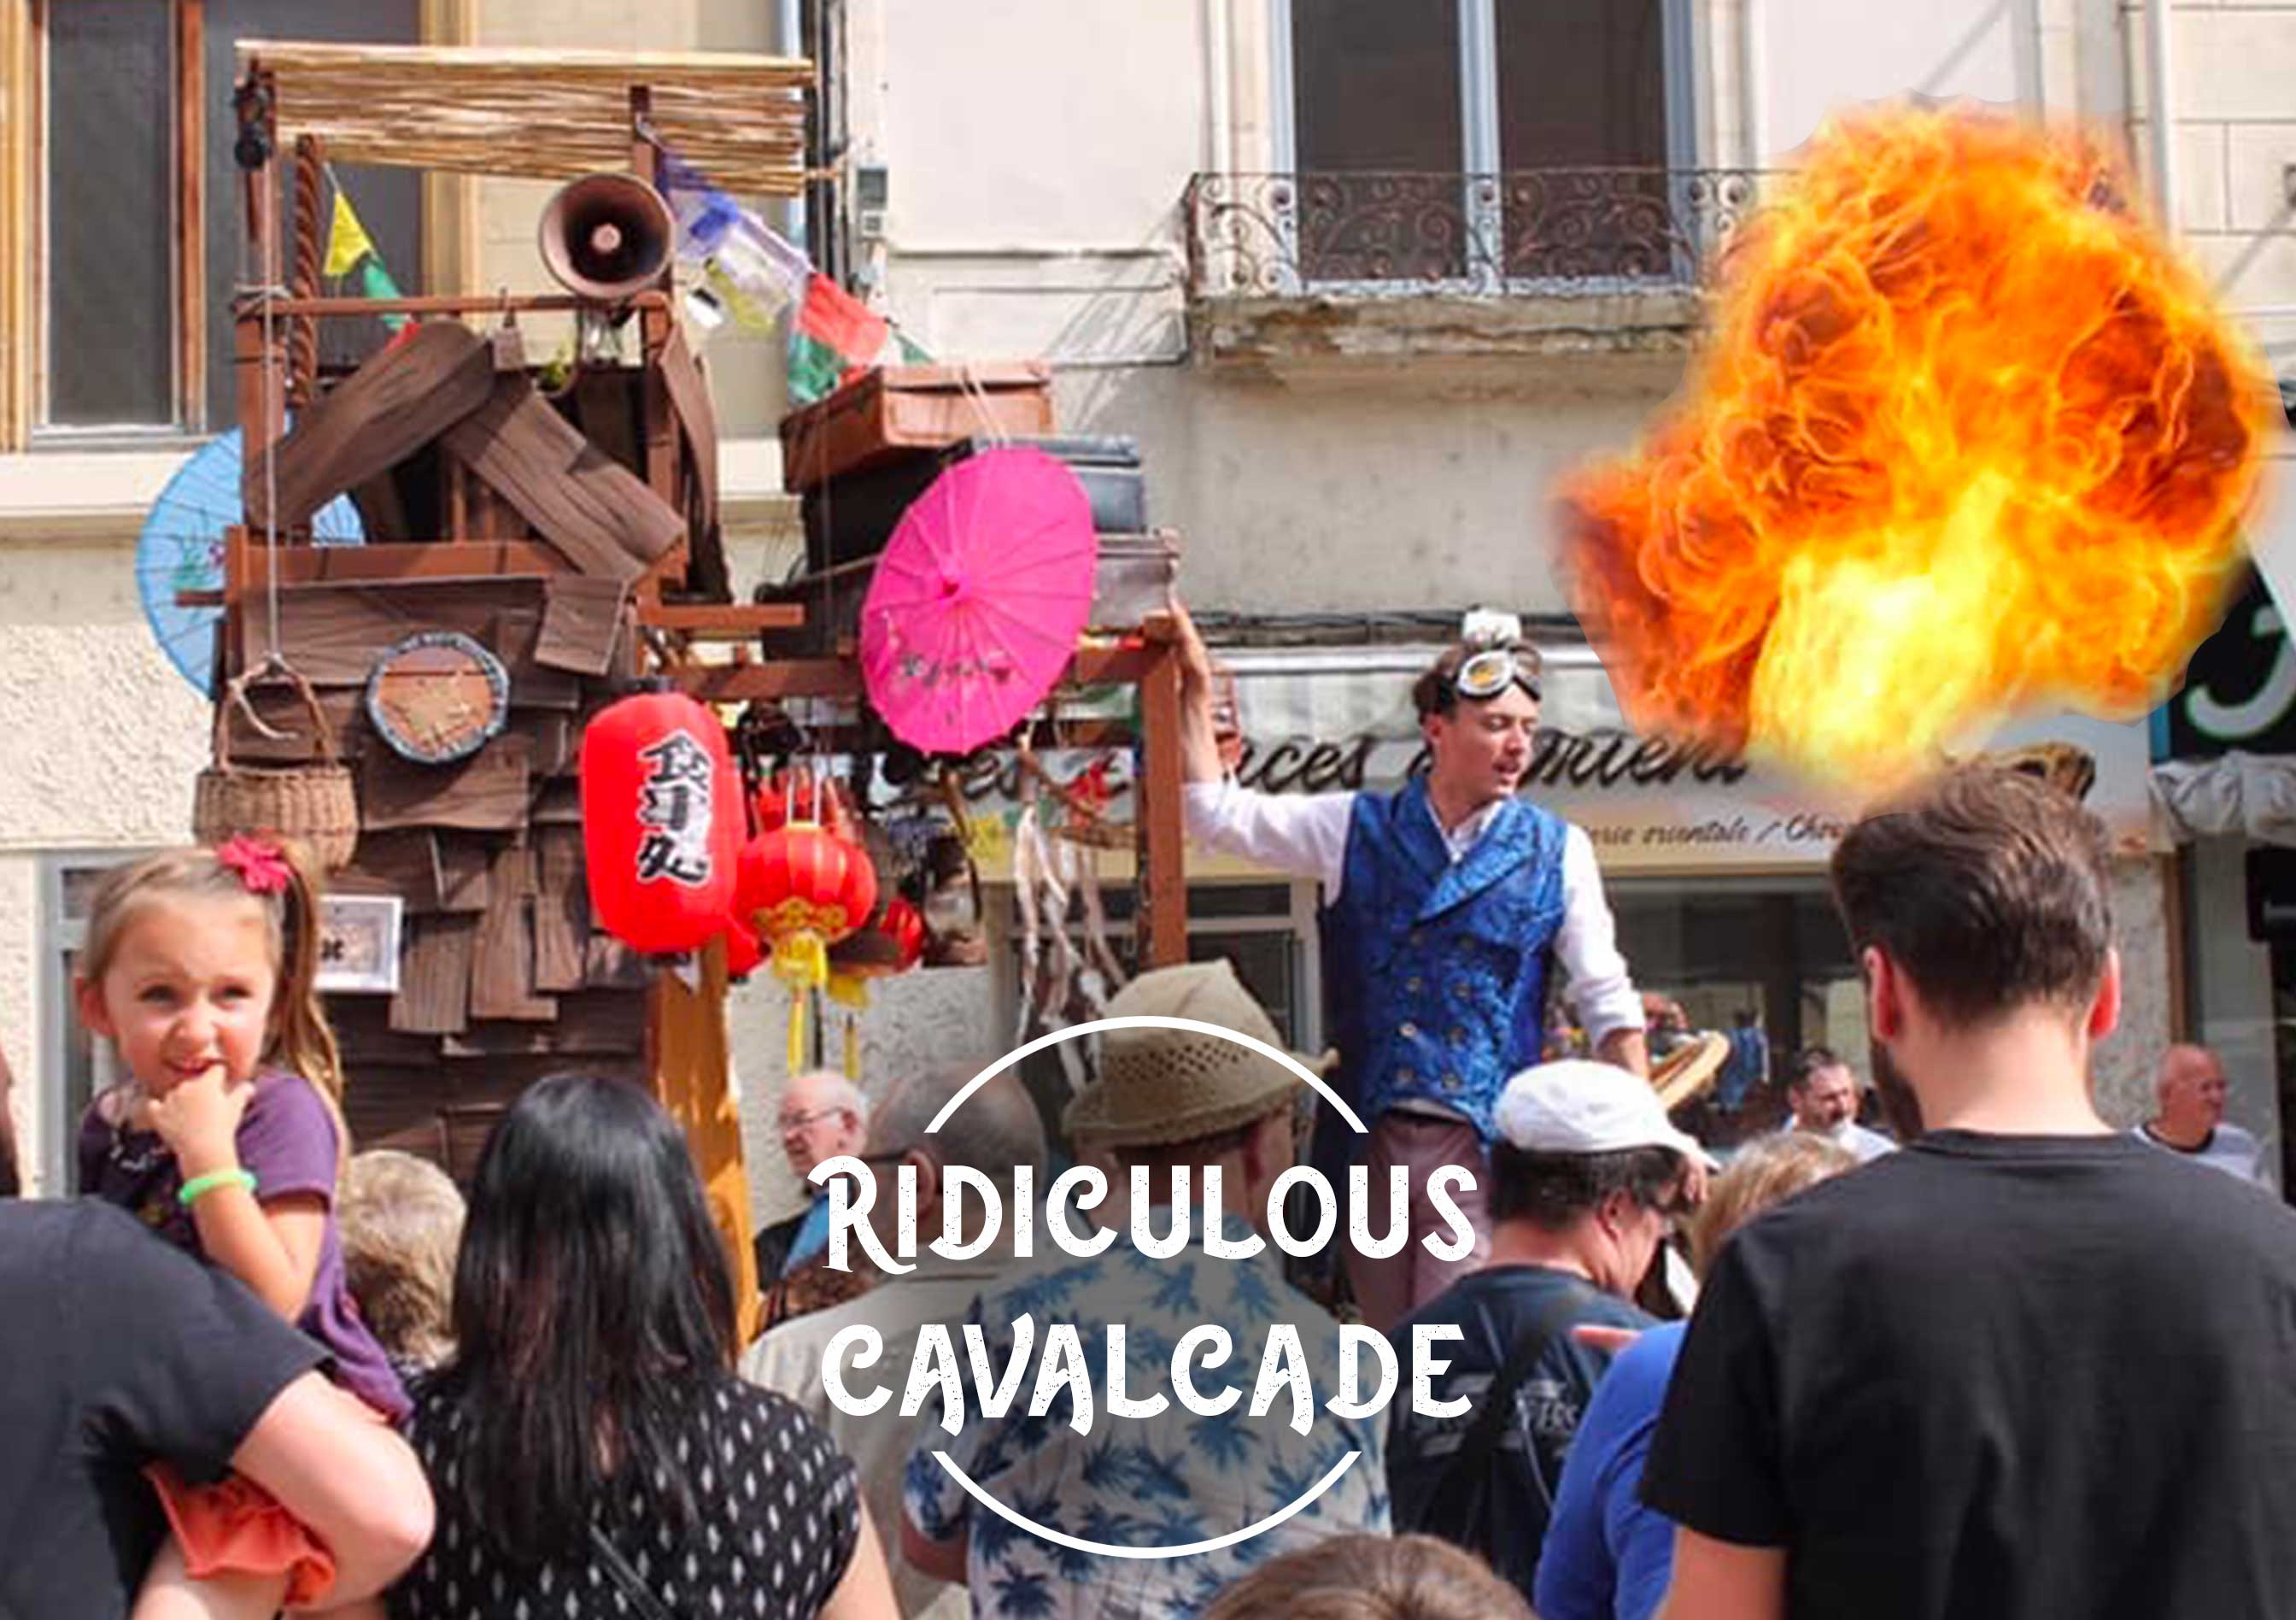 La Ridiculous Cavalcade